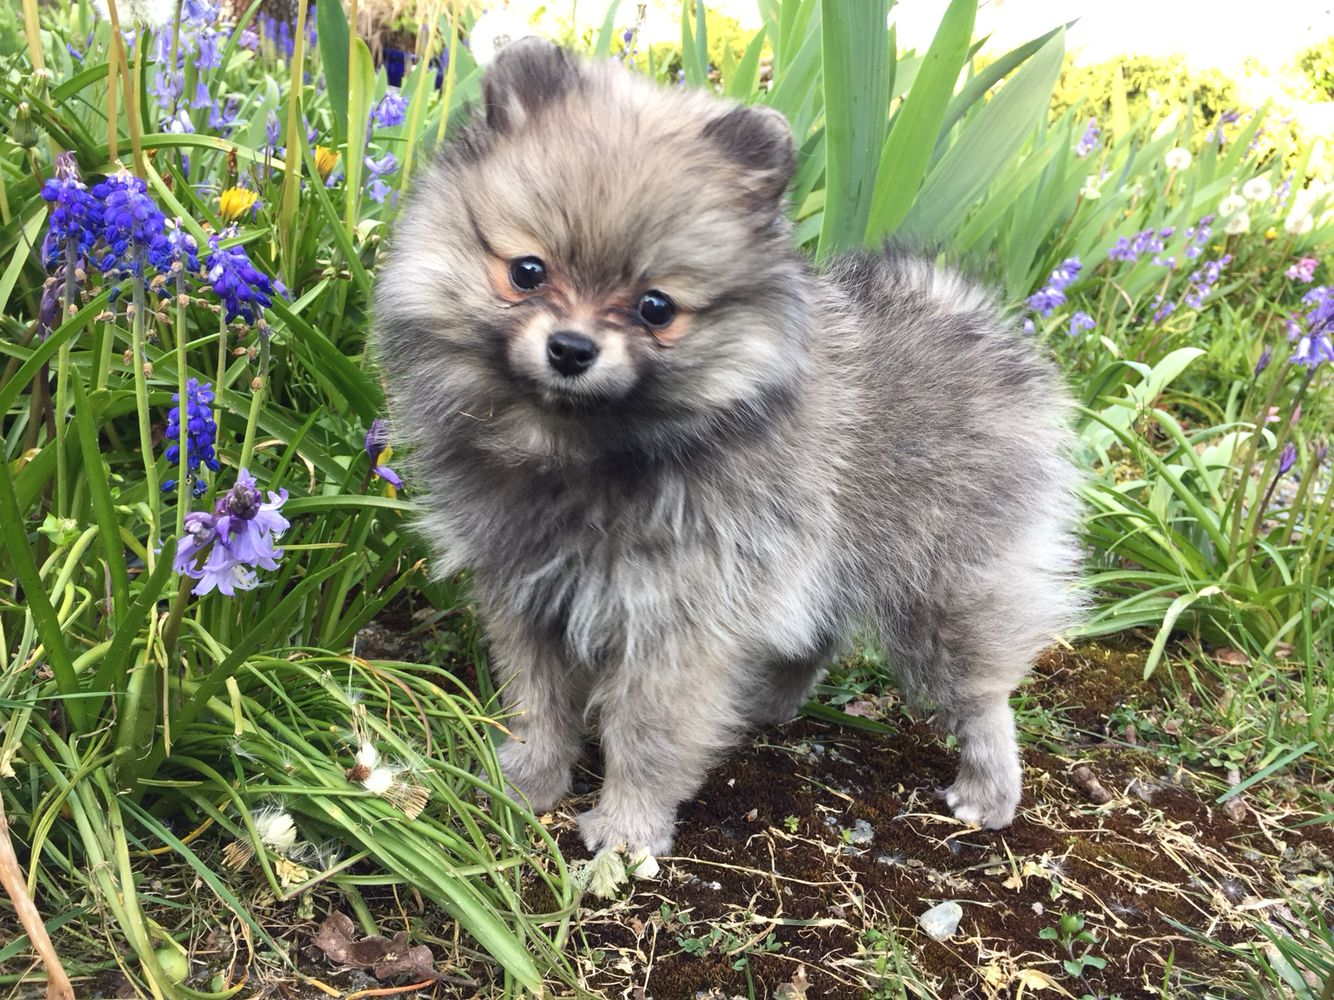 Cute creamwolf sable pomeranian puppy teacup pomeranian cute creamwolf sable pomeranian puppy nvjuhfo Image collections